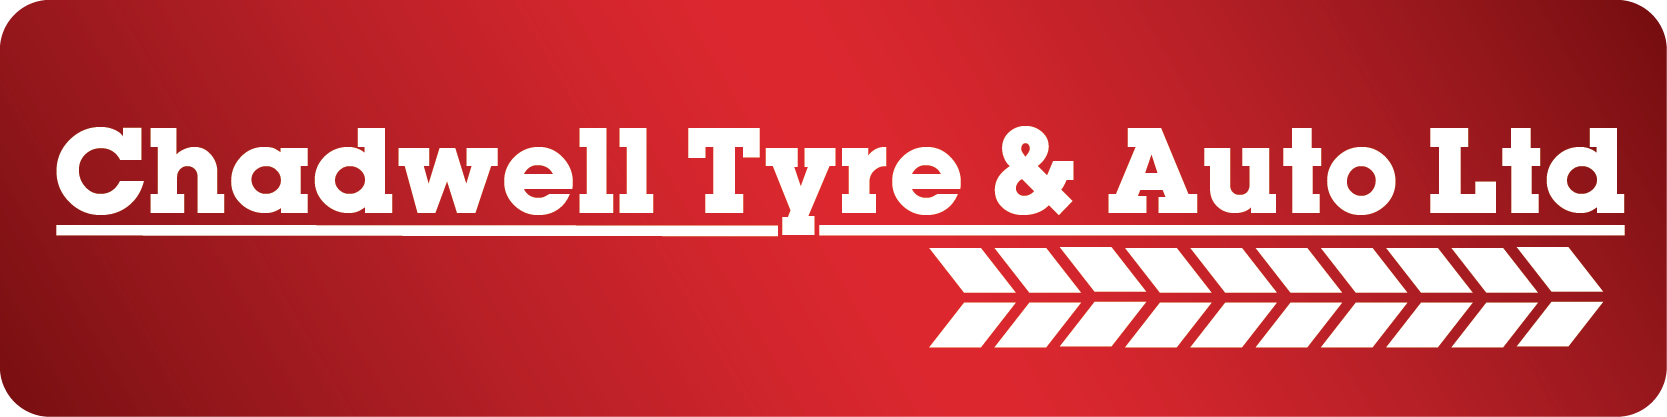 Chadwell Tyre and Auto Ltd